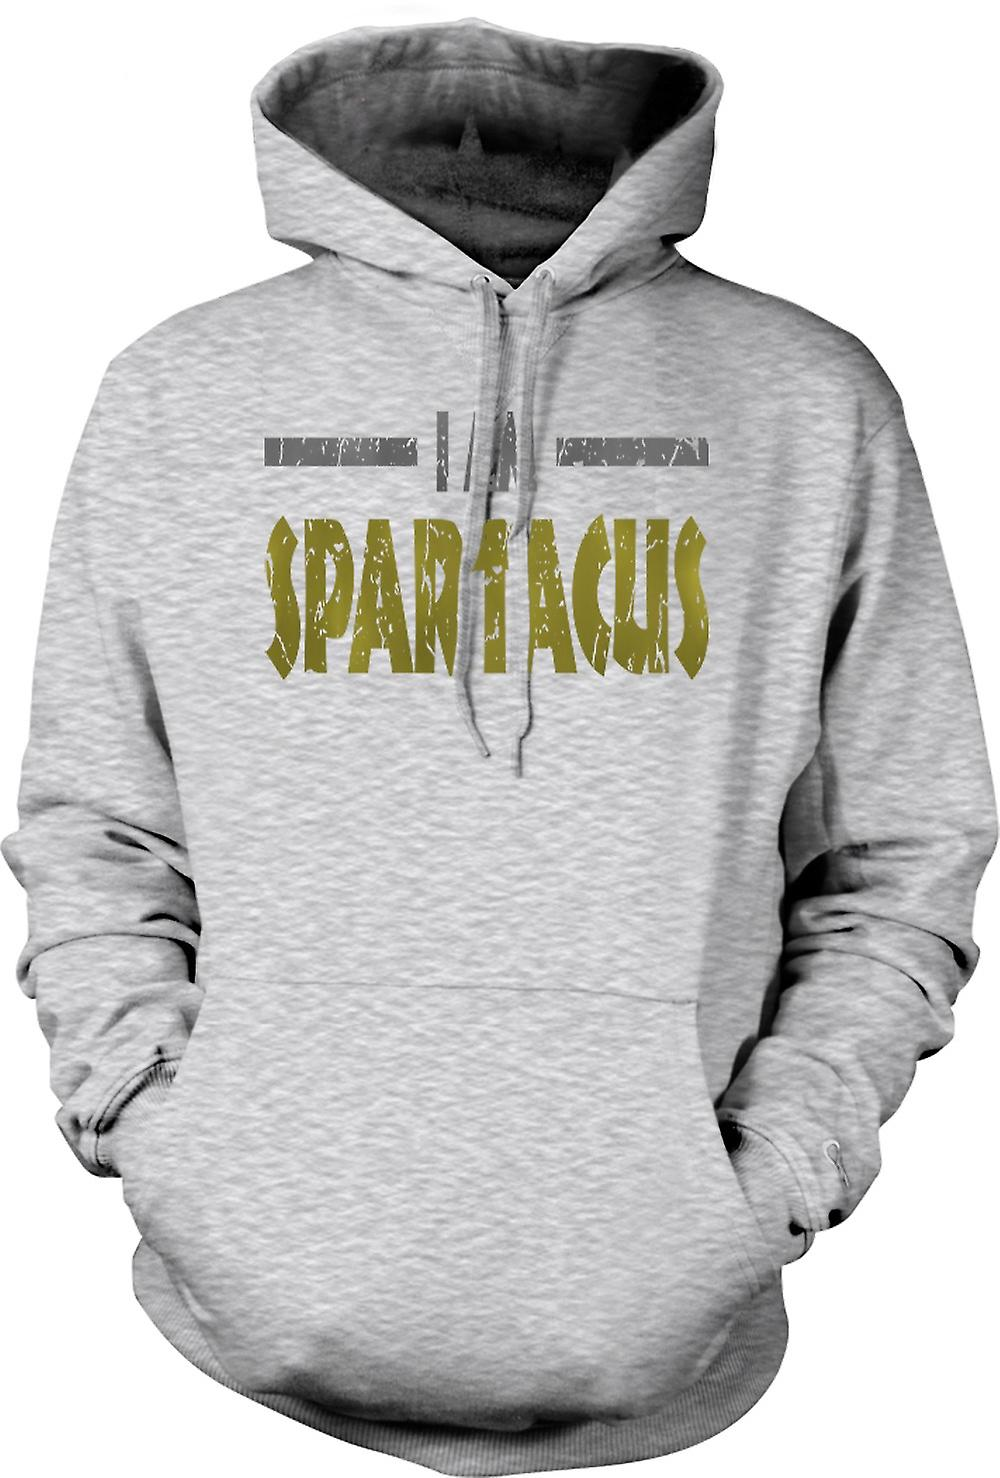 Mens Hoodie - I Am Spartacus - Funny Quote